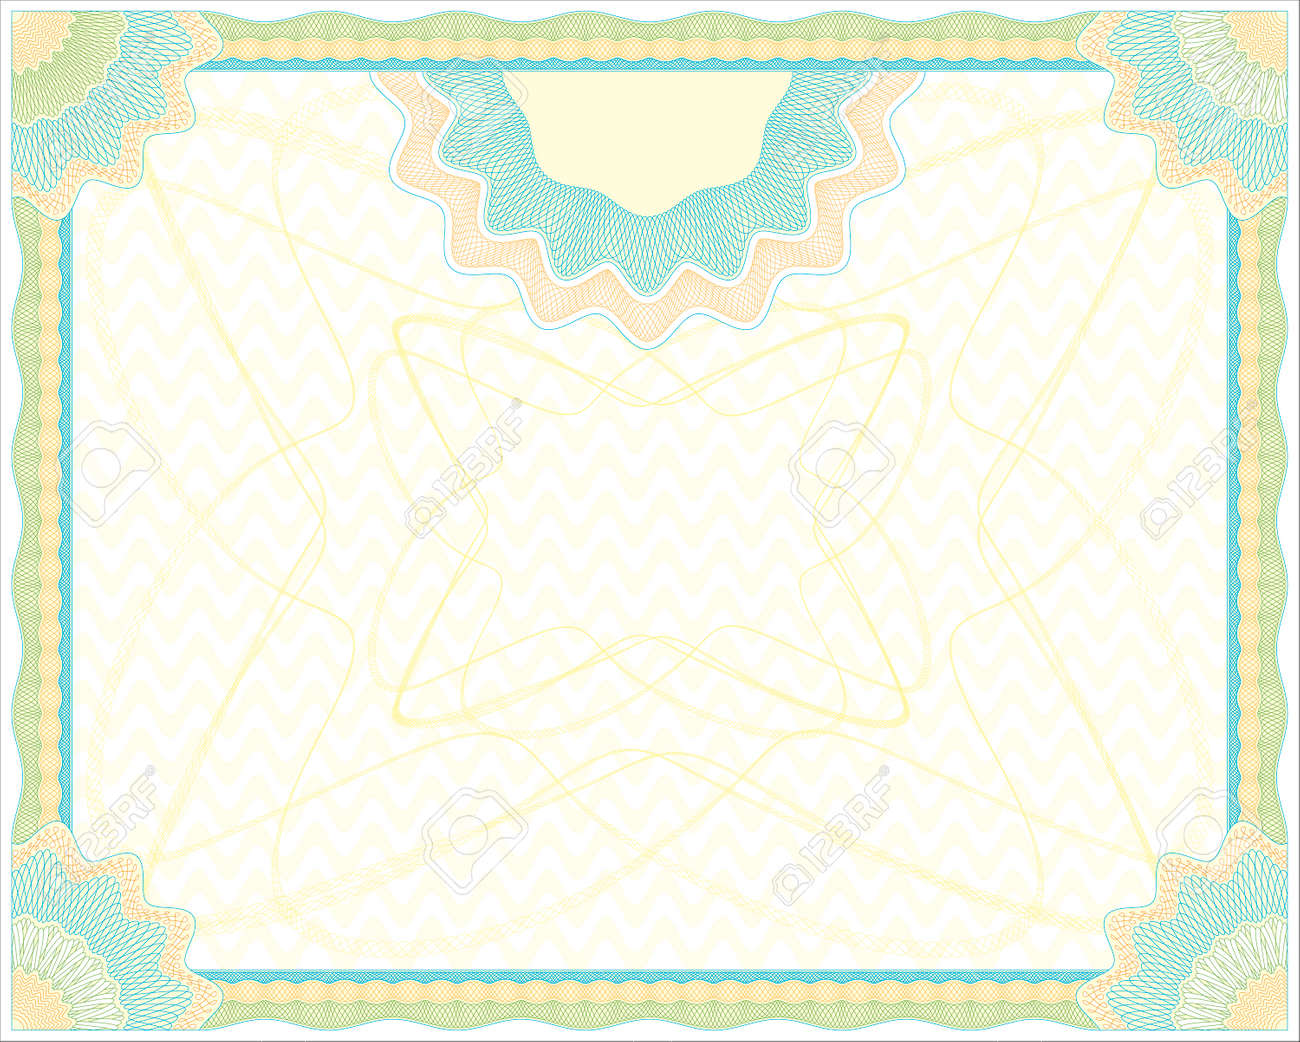 Secured Guilloche diploma background. In vector file elements are in layers for easy editing Stock Vector - 6288100